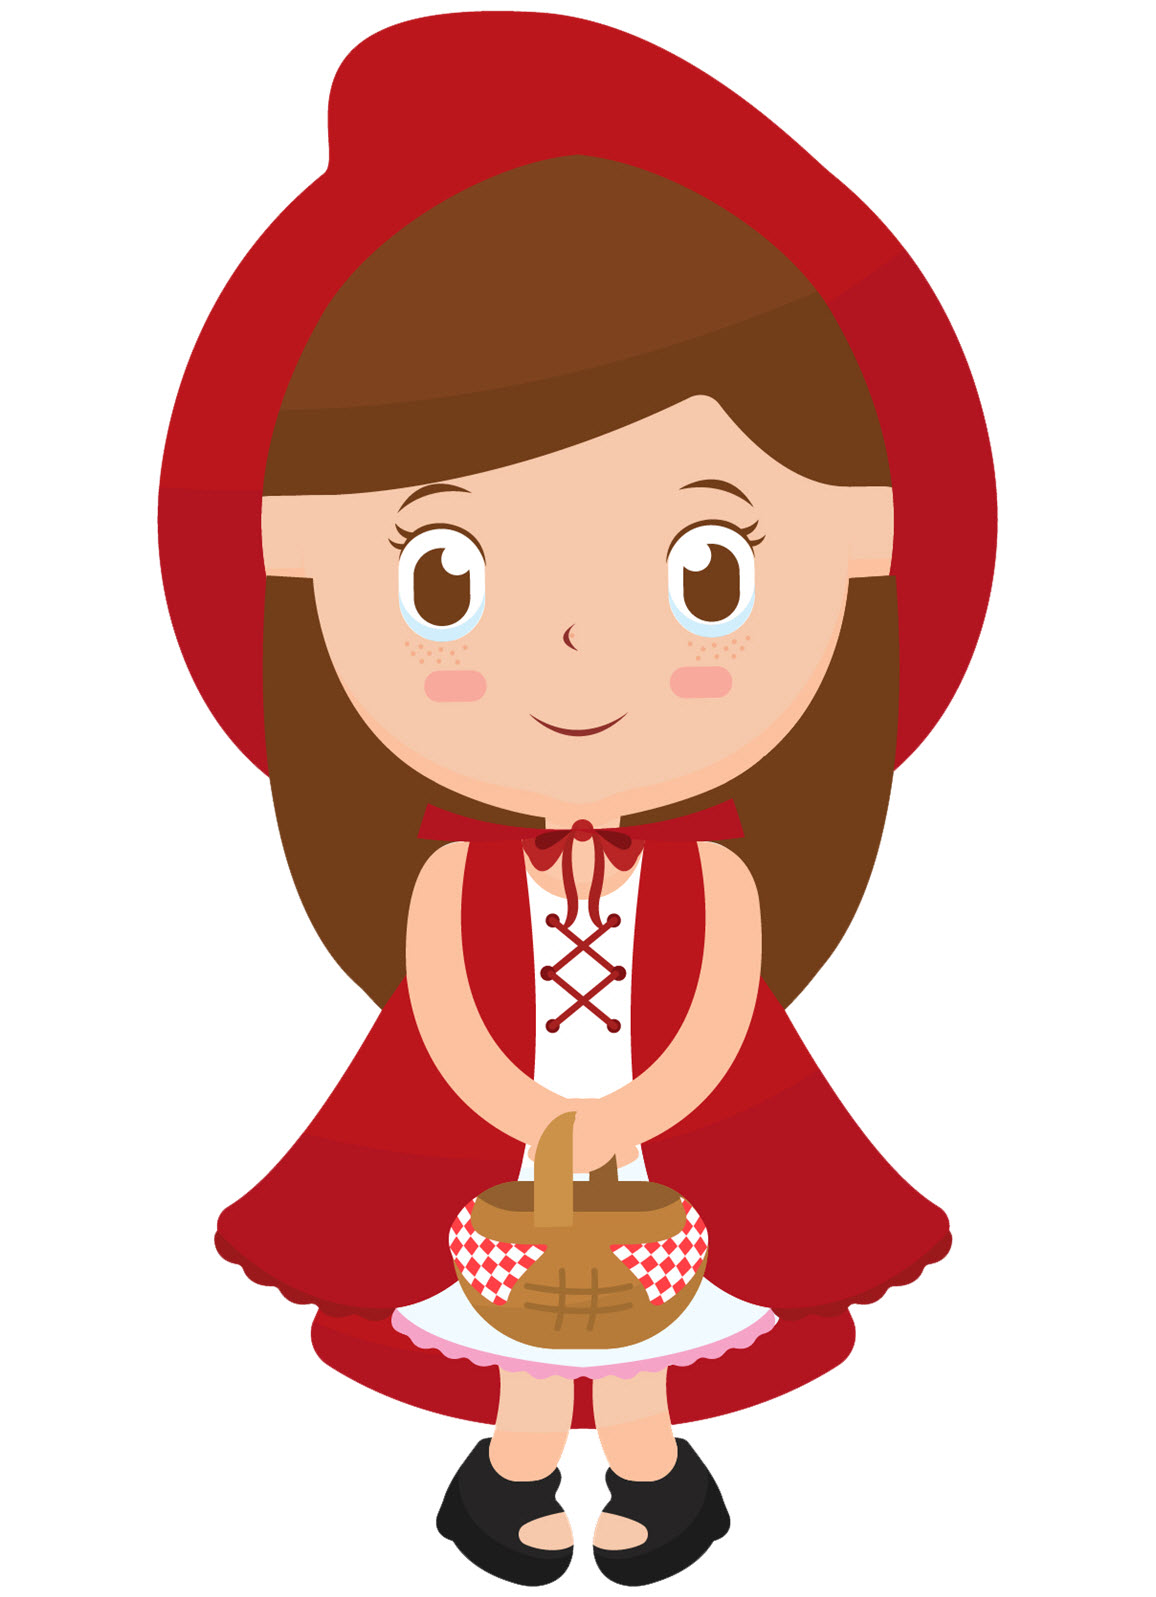 favourite children u2019s book characters bookbot little red riding hood clipart black and white little red riding hood clipart free